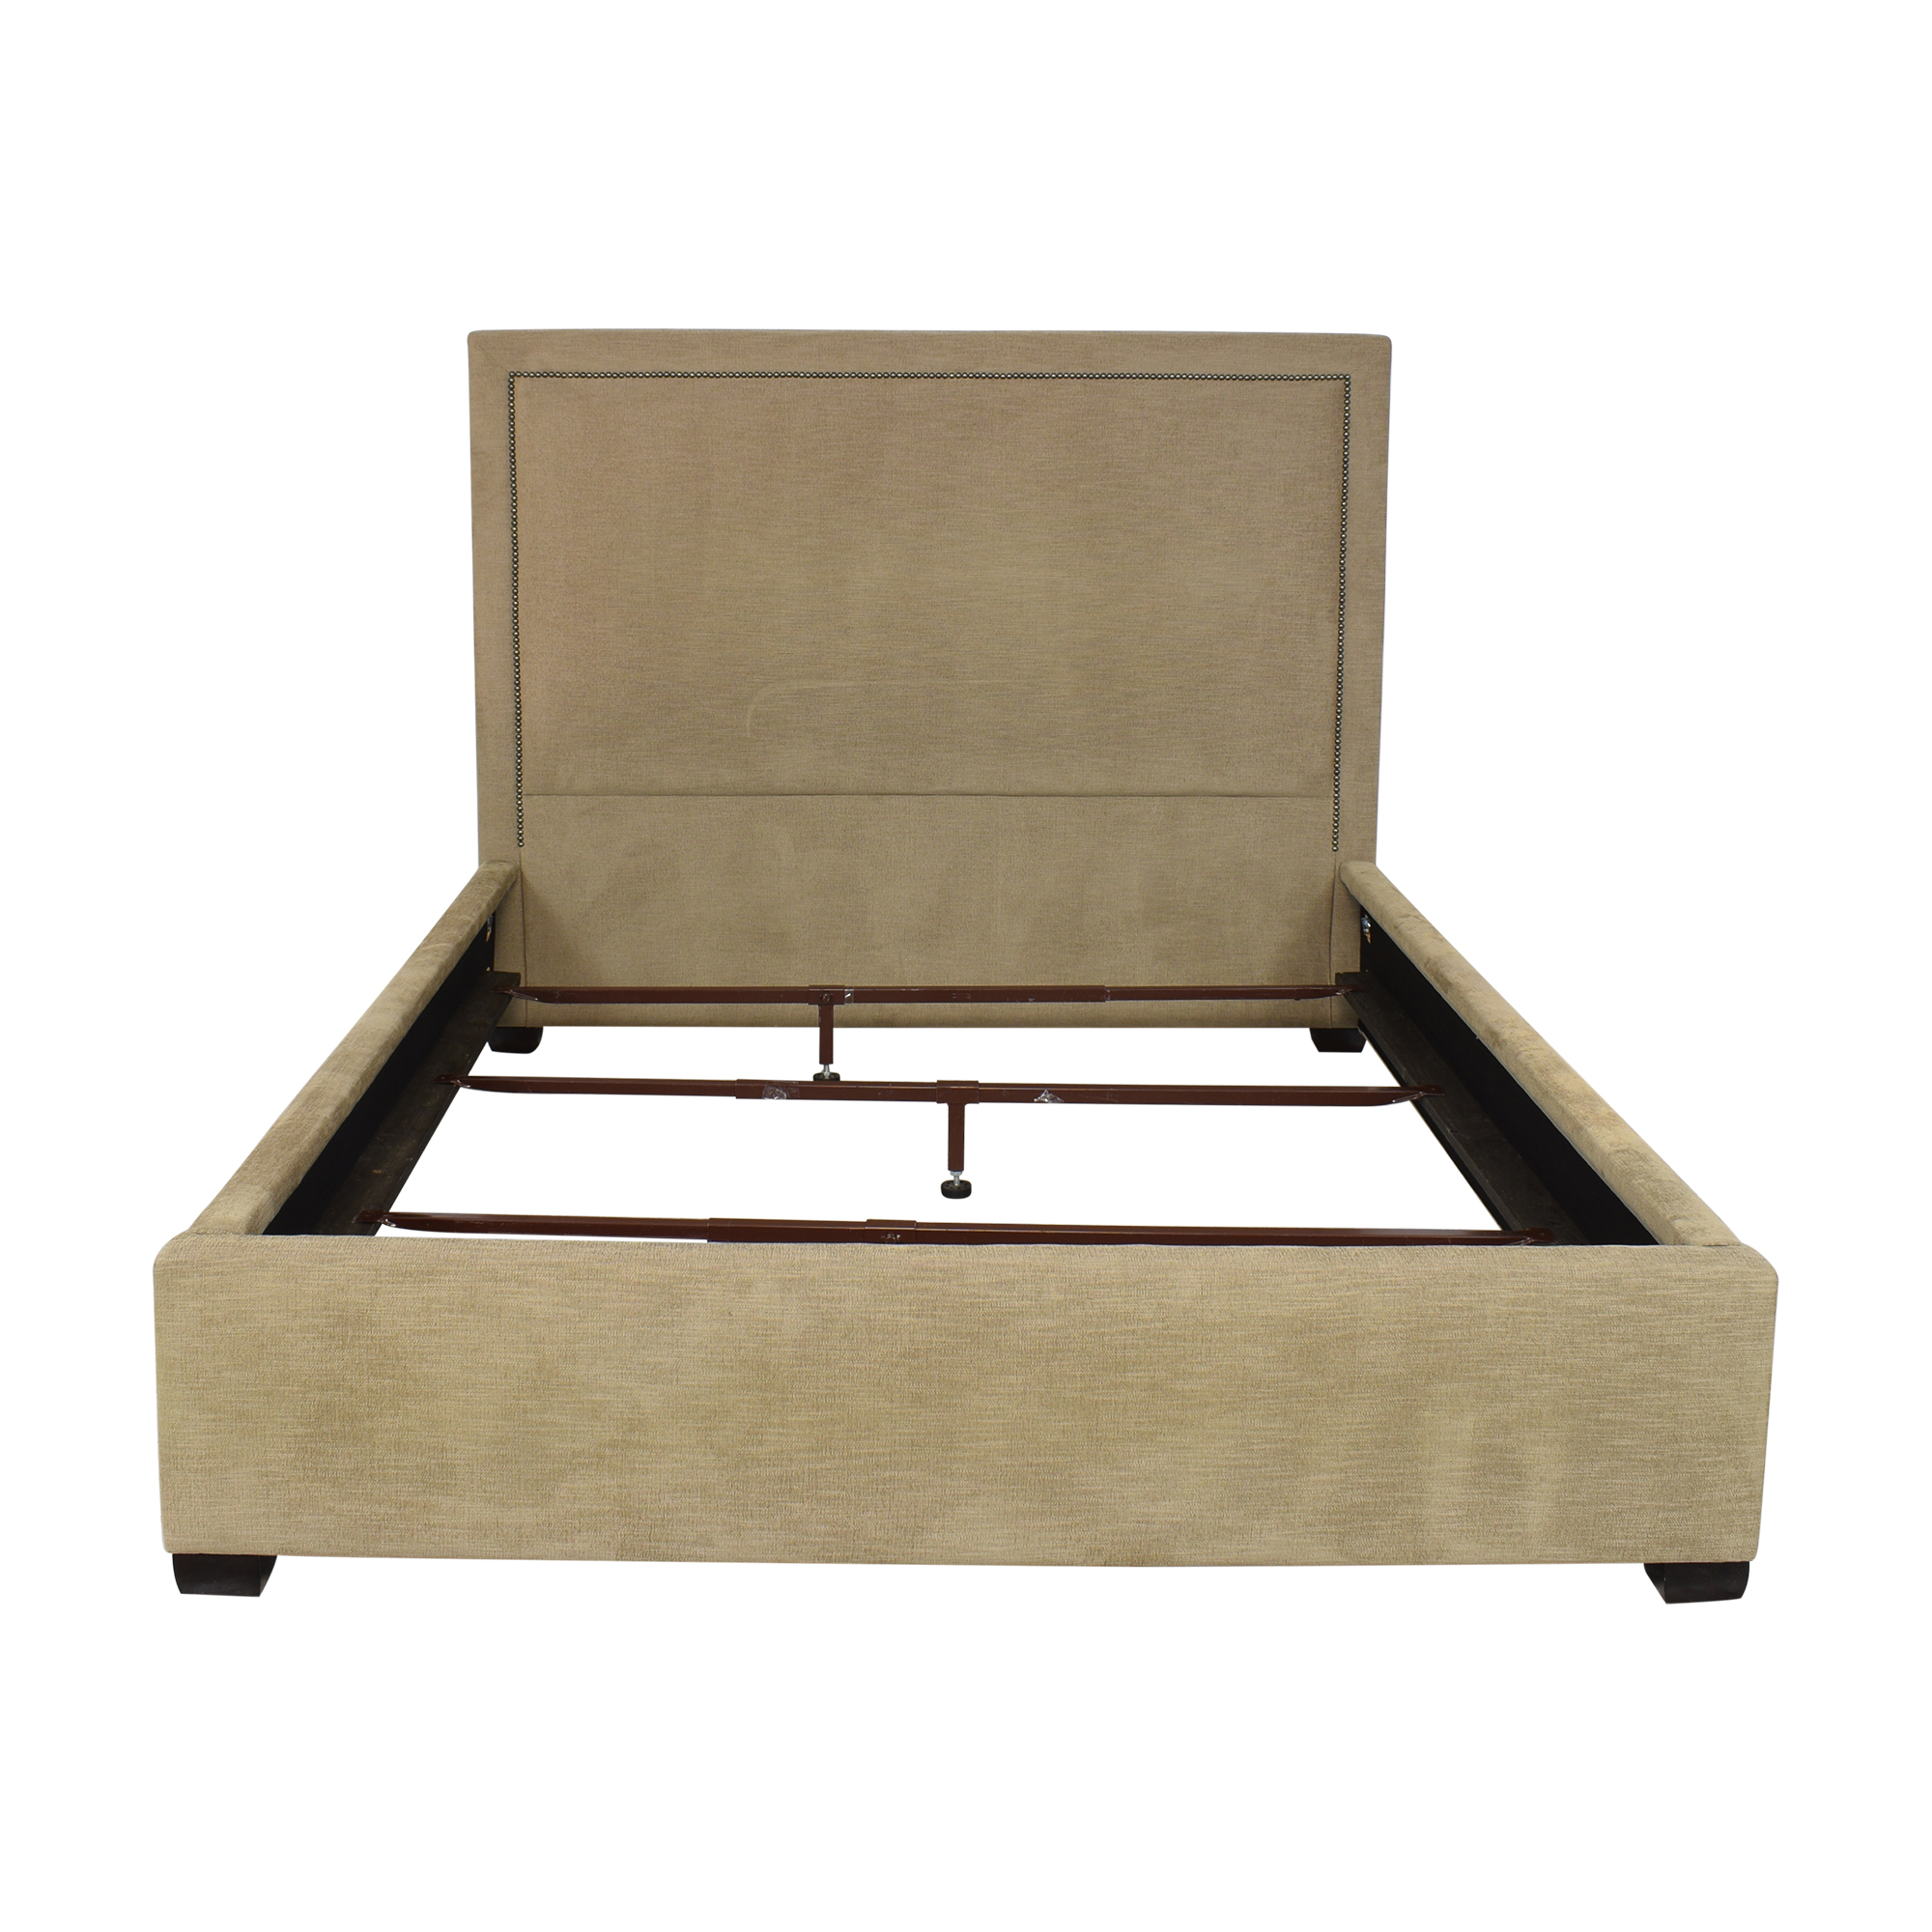 shop Raymour & Flanigan Raymour & Flanigan Maria Queen Bed online